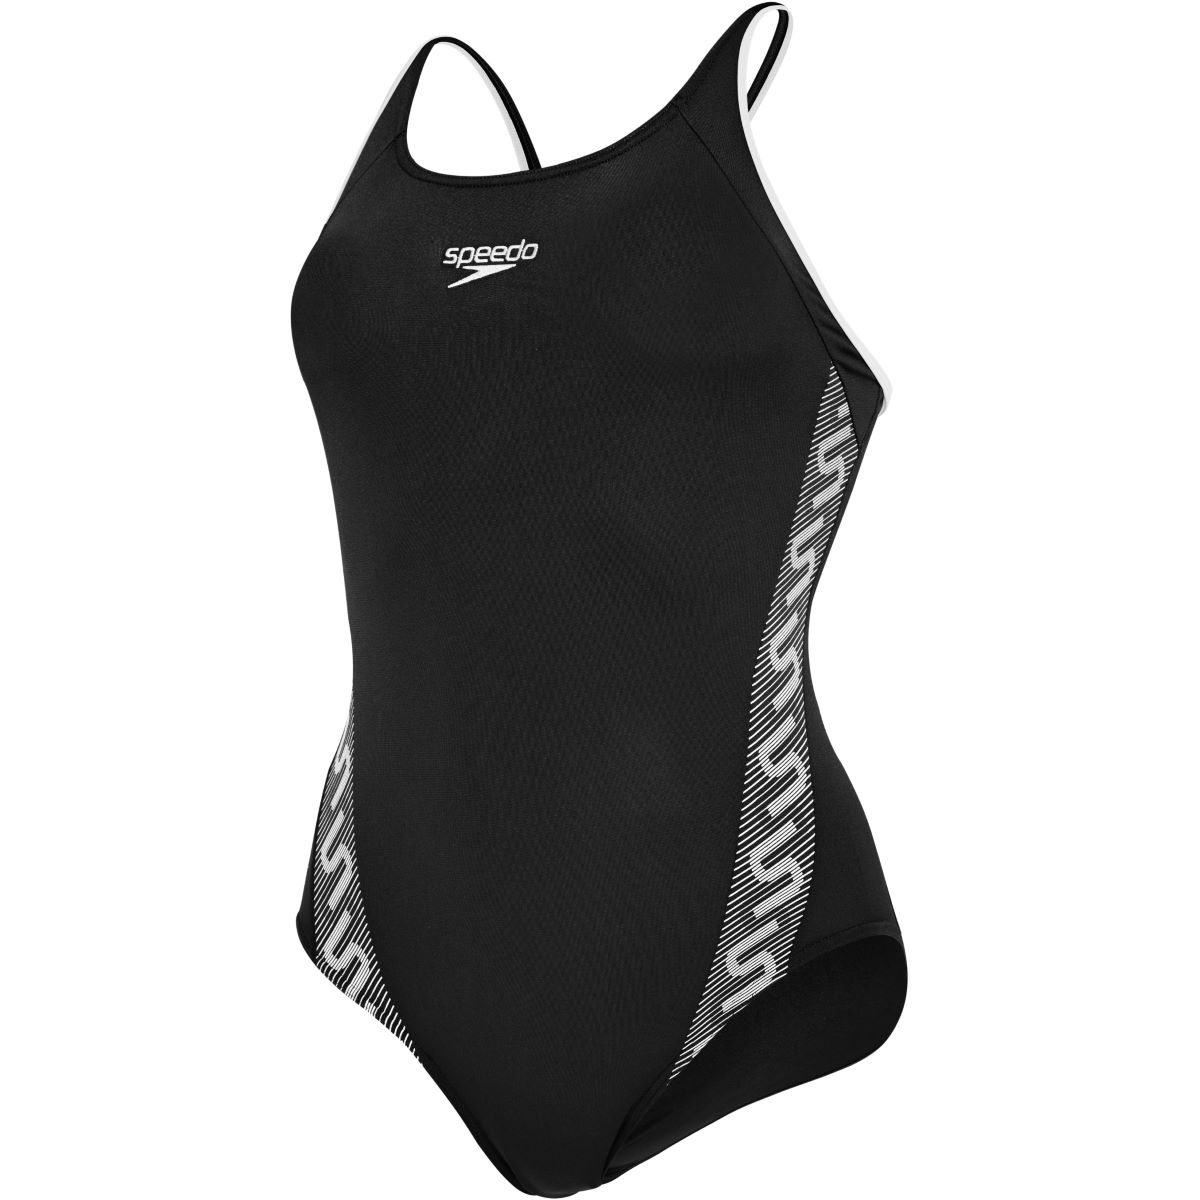 Speedo Womens Monogram Muscleback Swimsuit   Adult Swimwear